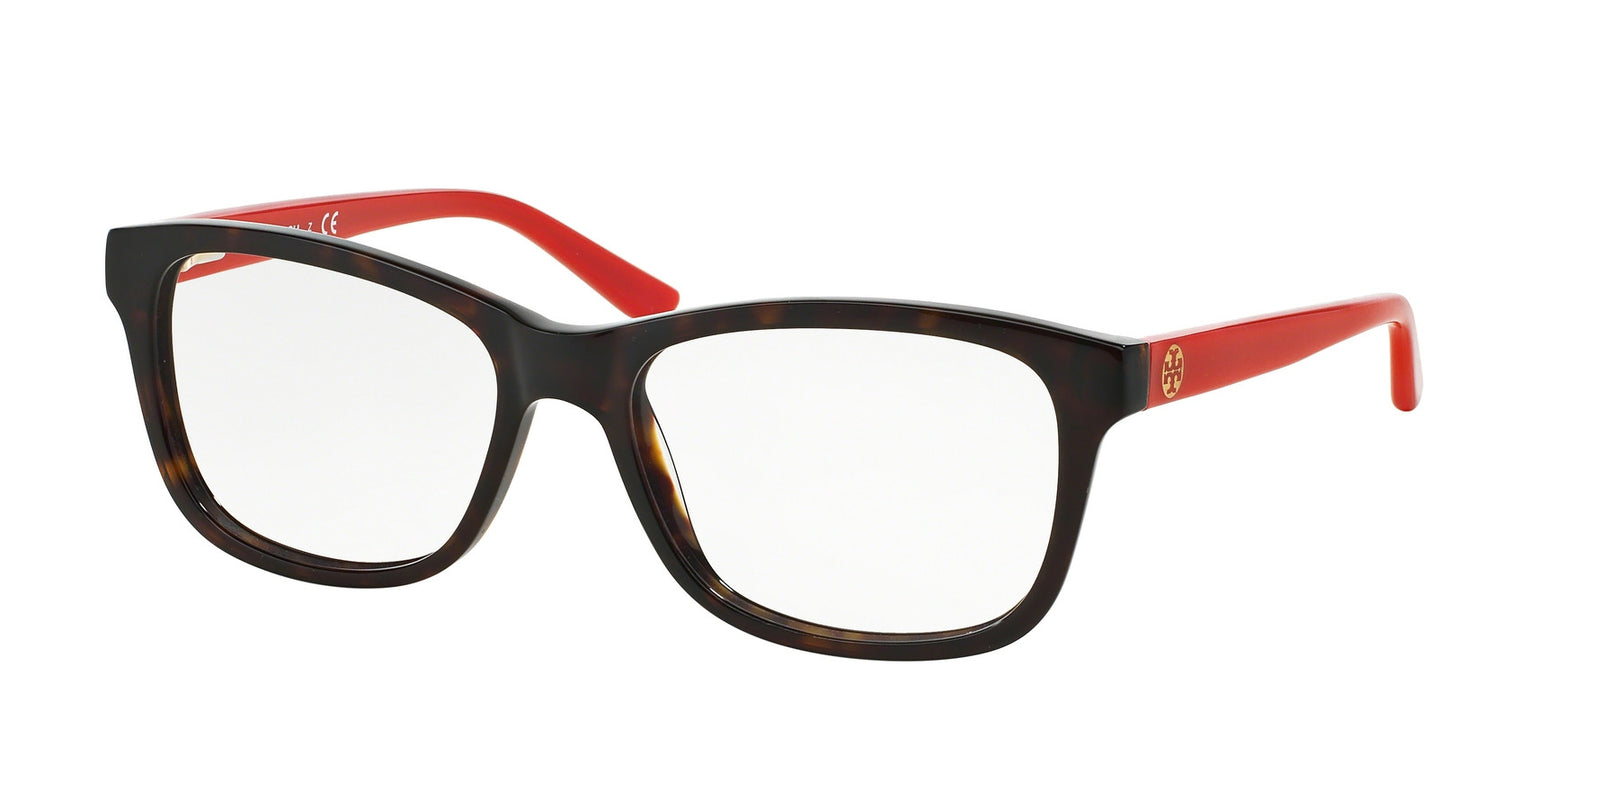 Tory Burch TY 2038 1213 Eyeglasses Dark Tortoise